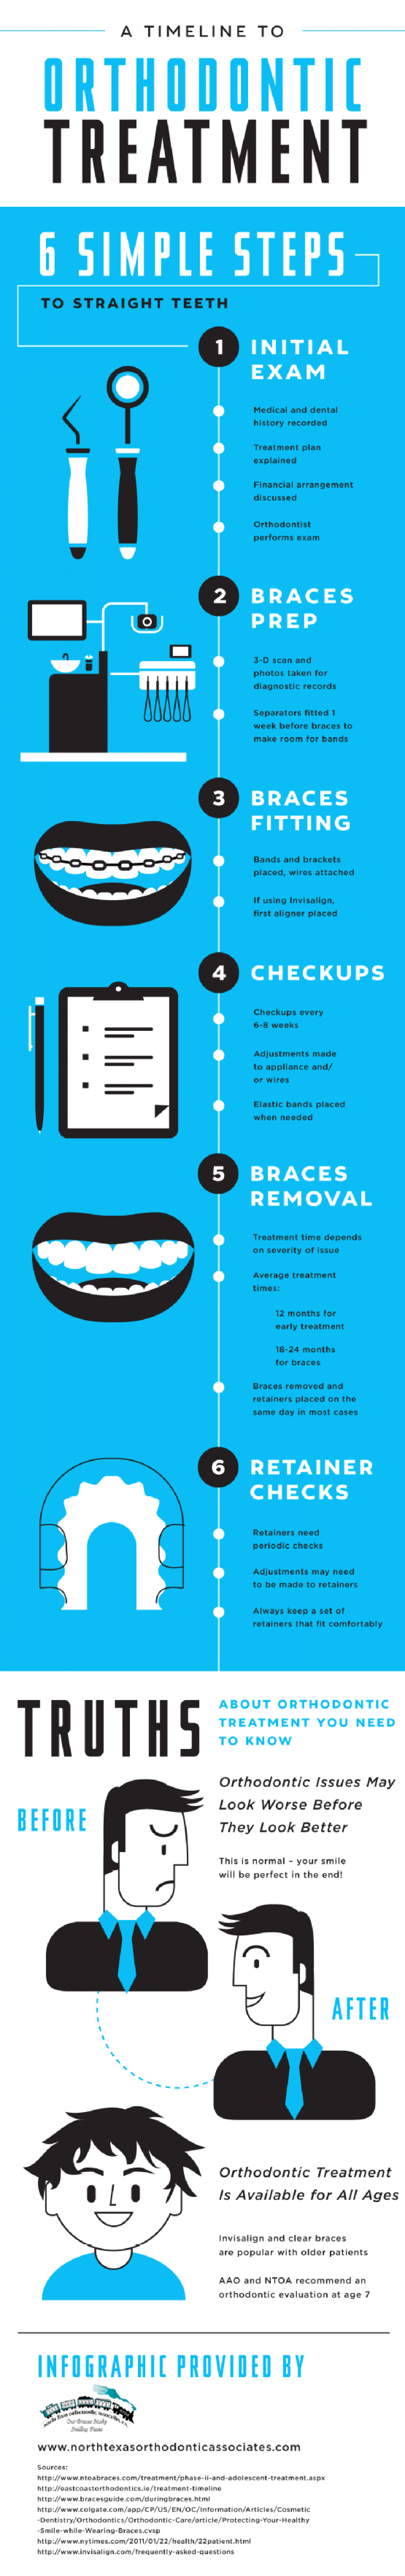 A Timeline to Orthodontic Treatment  Infographic